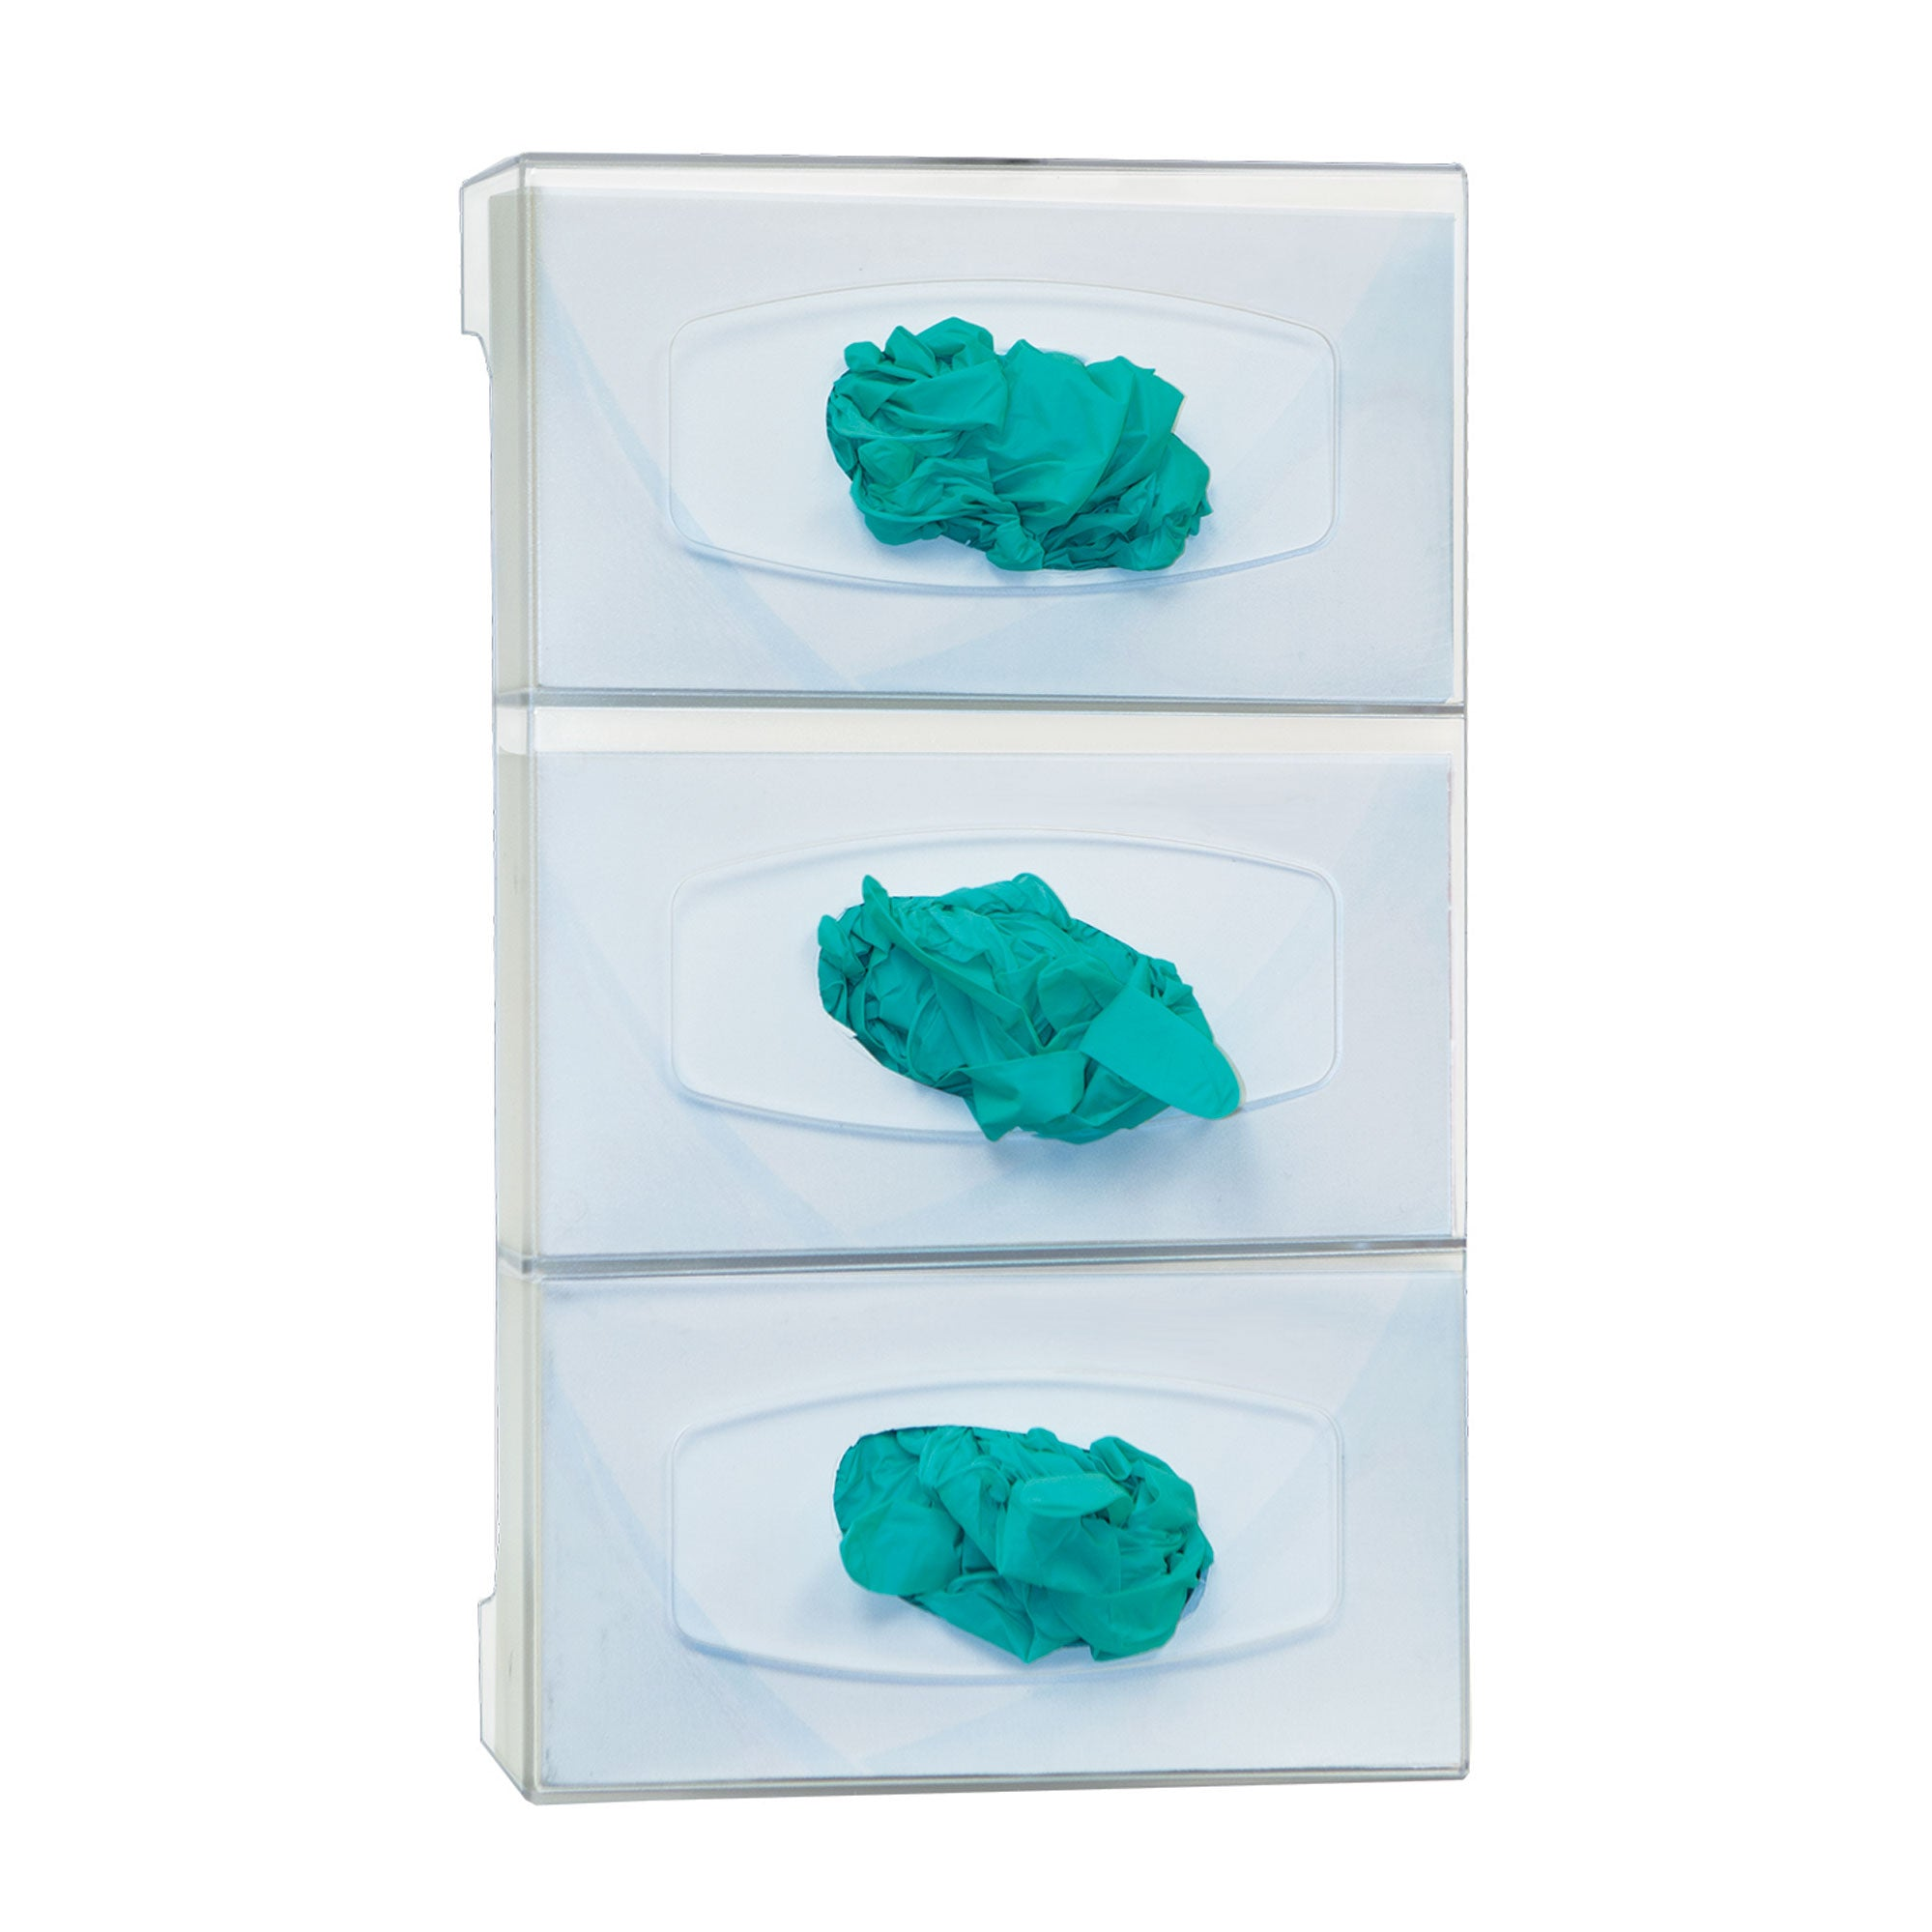 Bowman Polycarbonate Triple Glove Box Dispenser